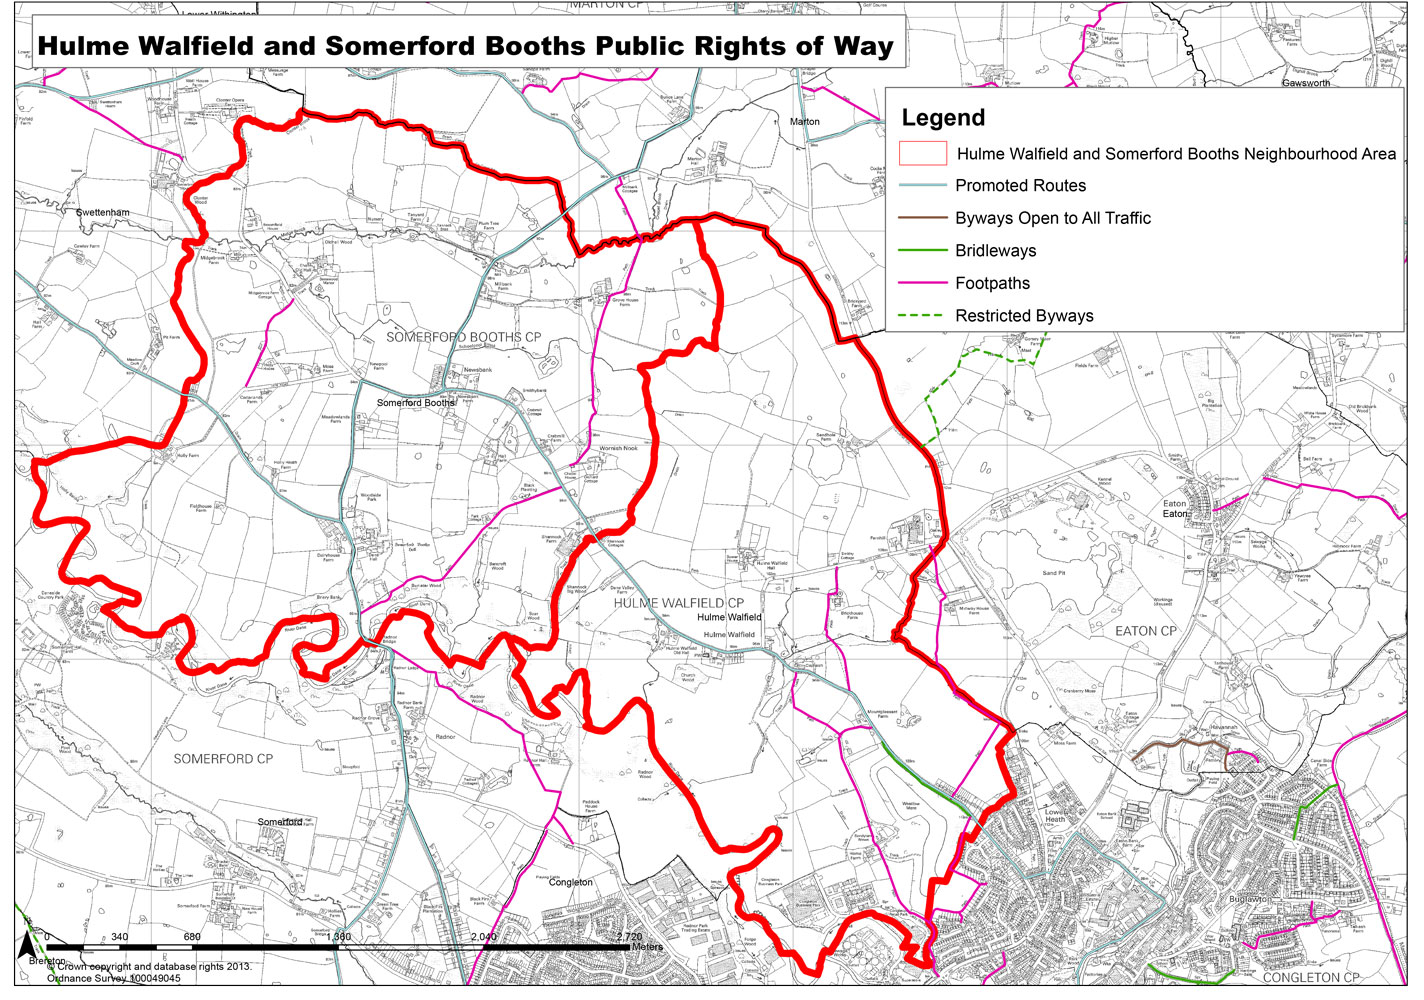 Hulme Walfield and Somerford Booths Public Rights of Way